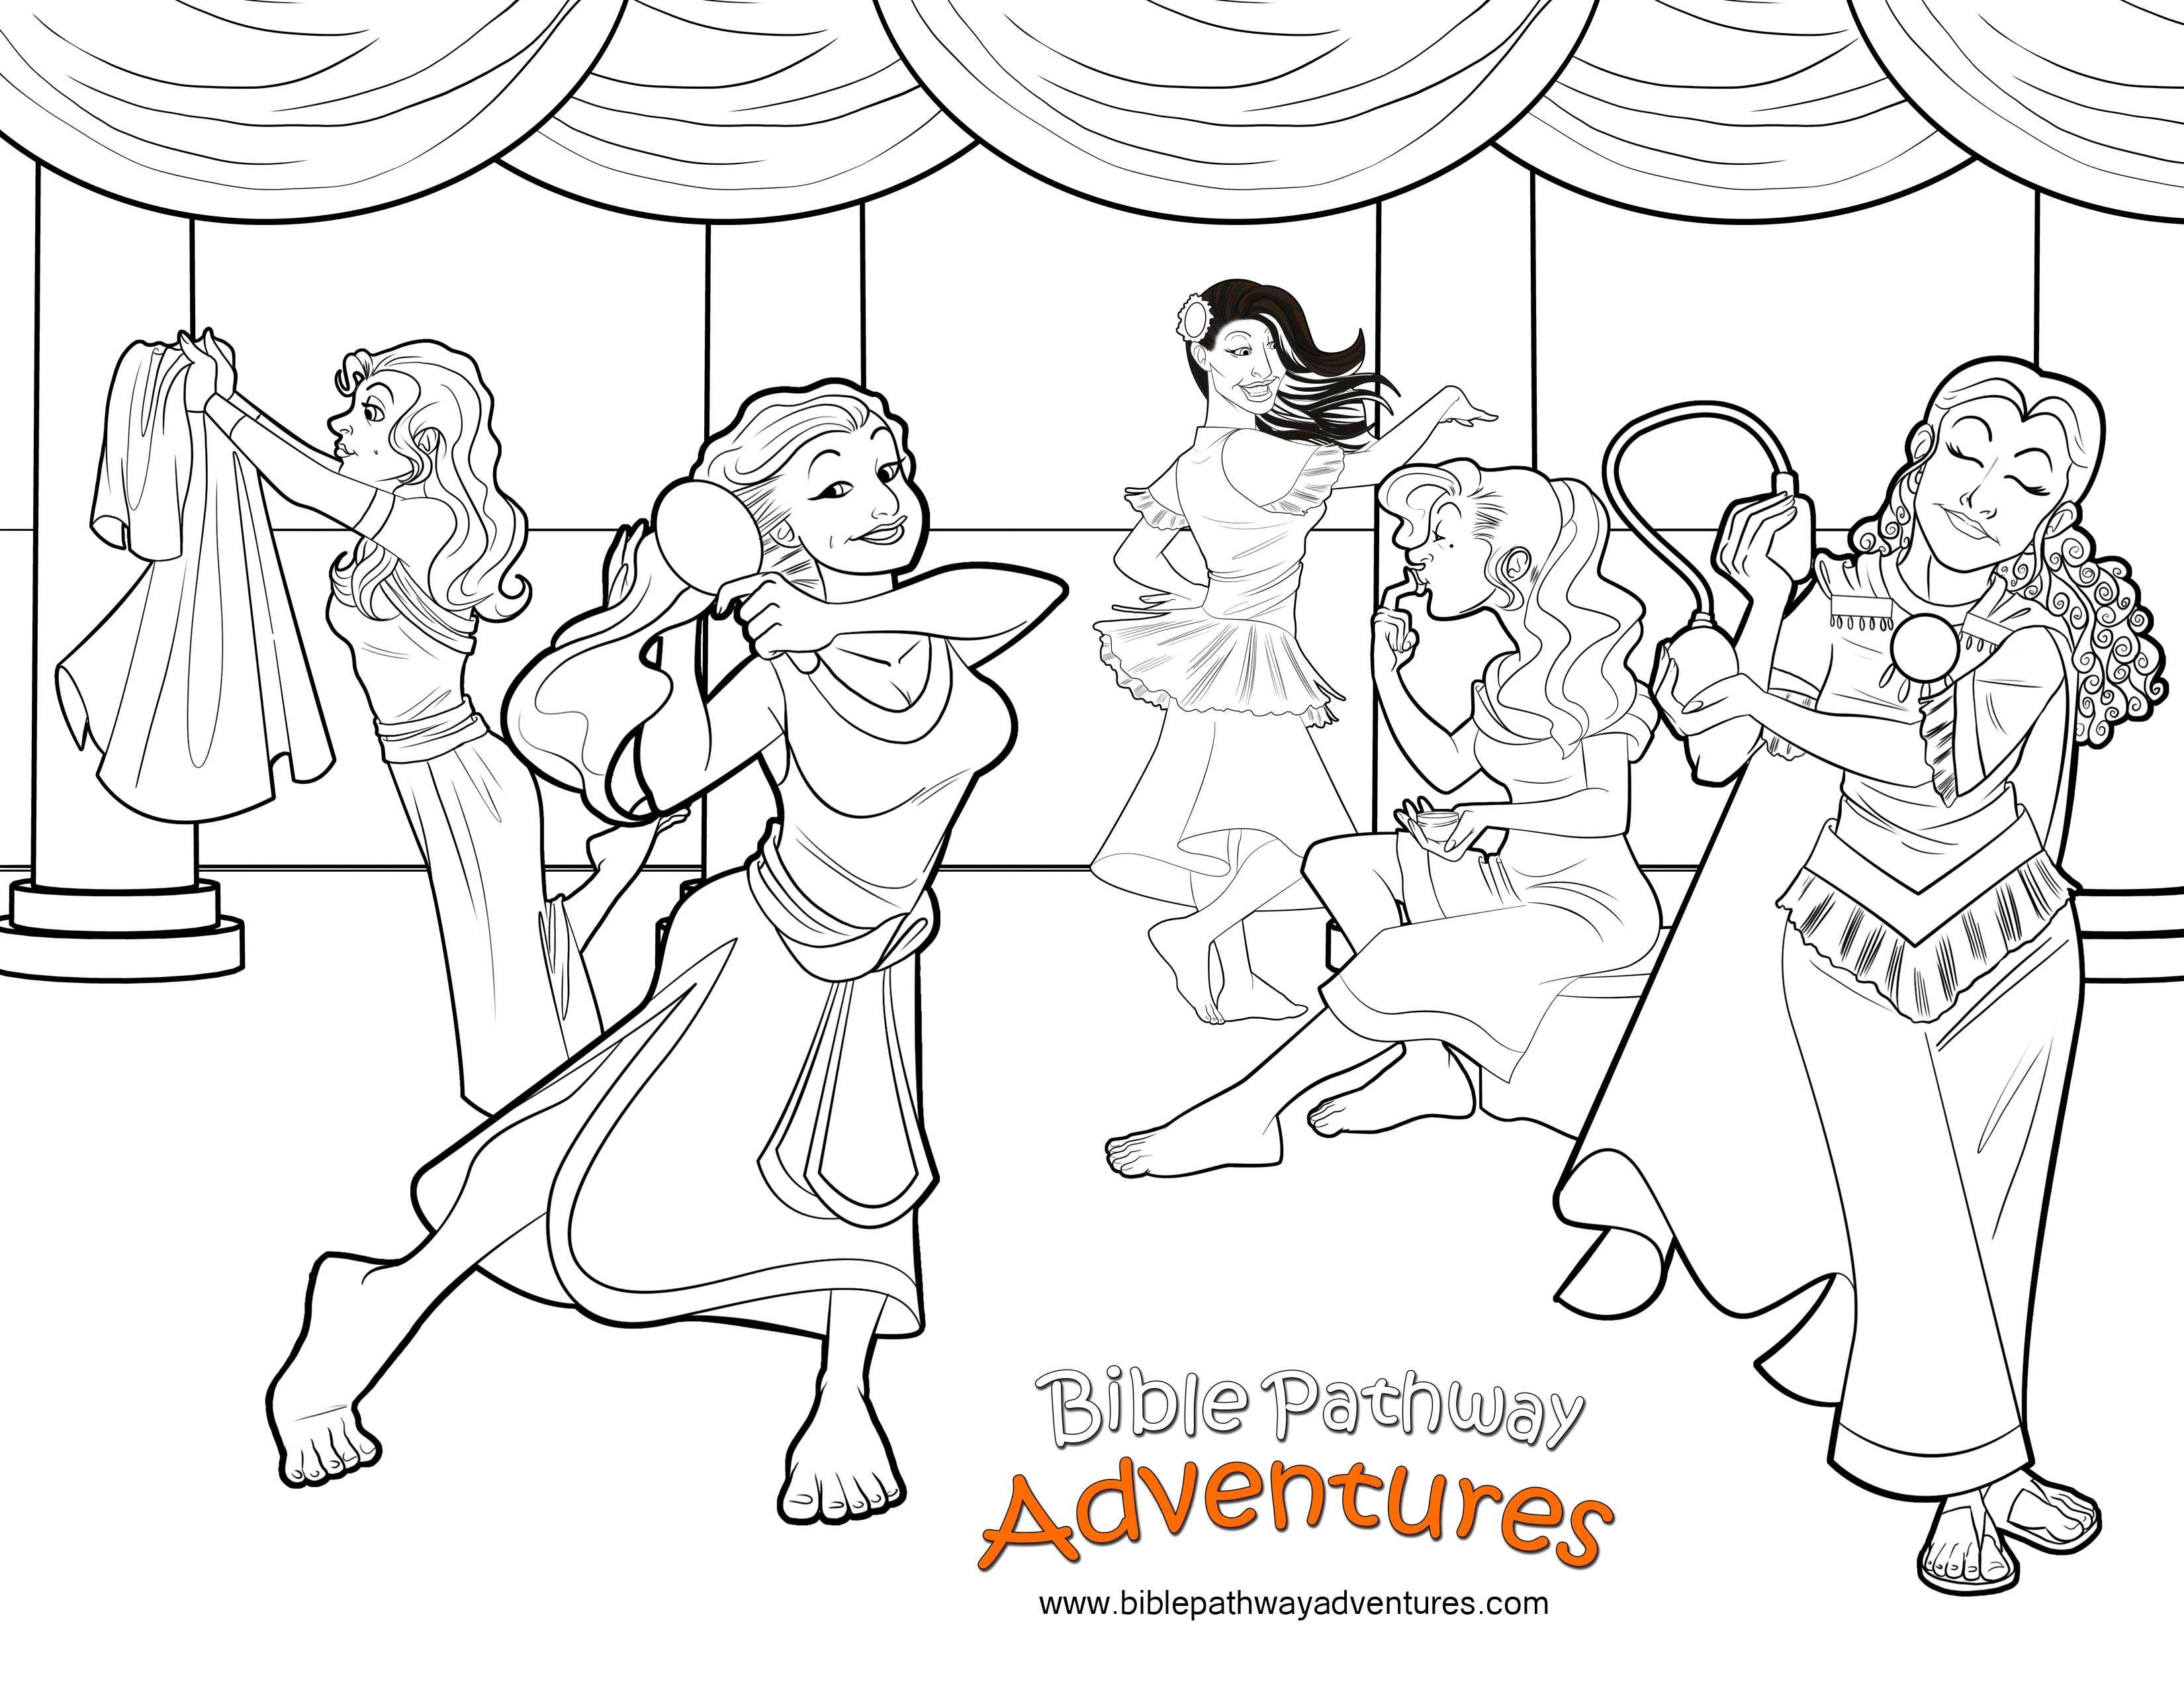 esther bible coloring pages esther bible coloring coloring pages bible esther pages coloring